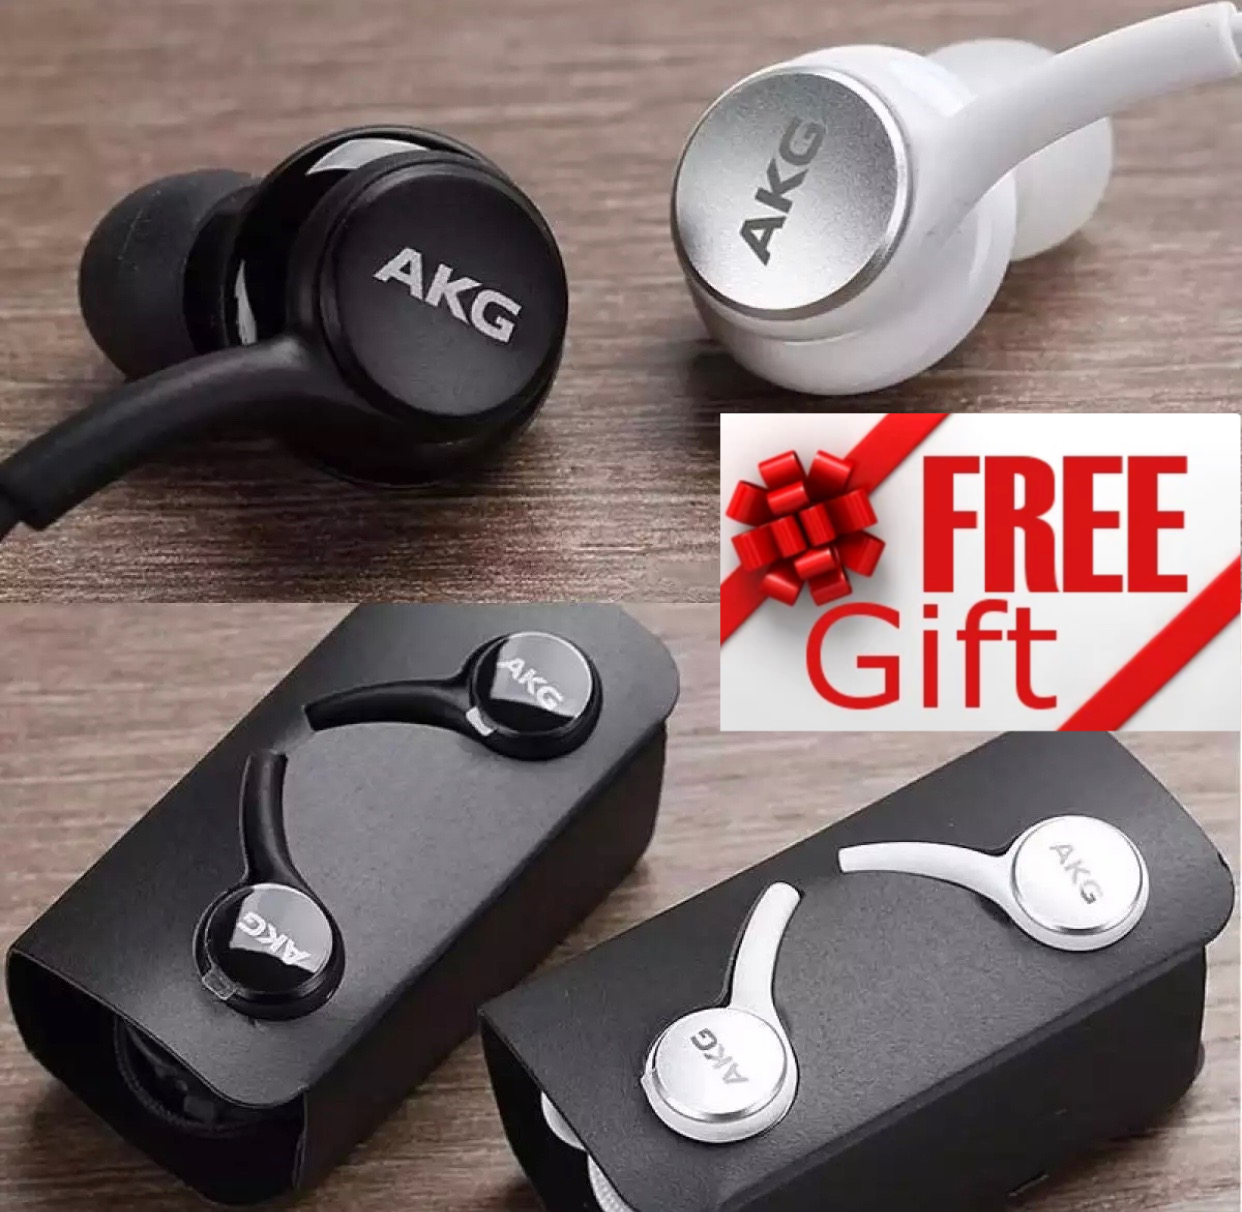 Superb Bass AKG_S10 Earphones Handsfree - 3.5mm Jack - Supported with all devices